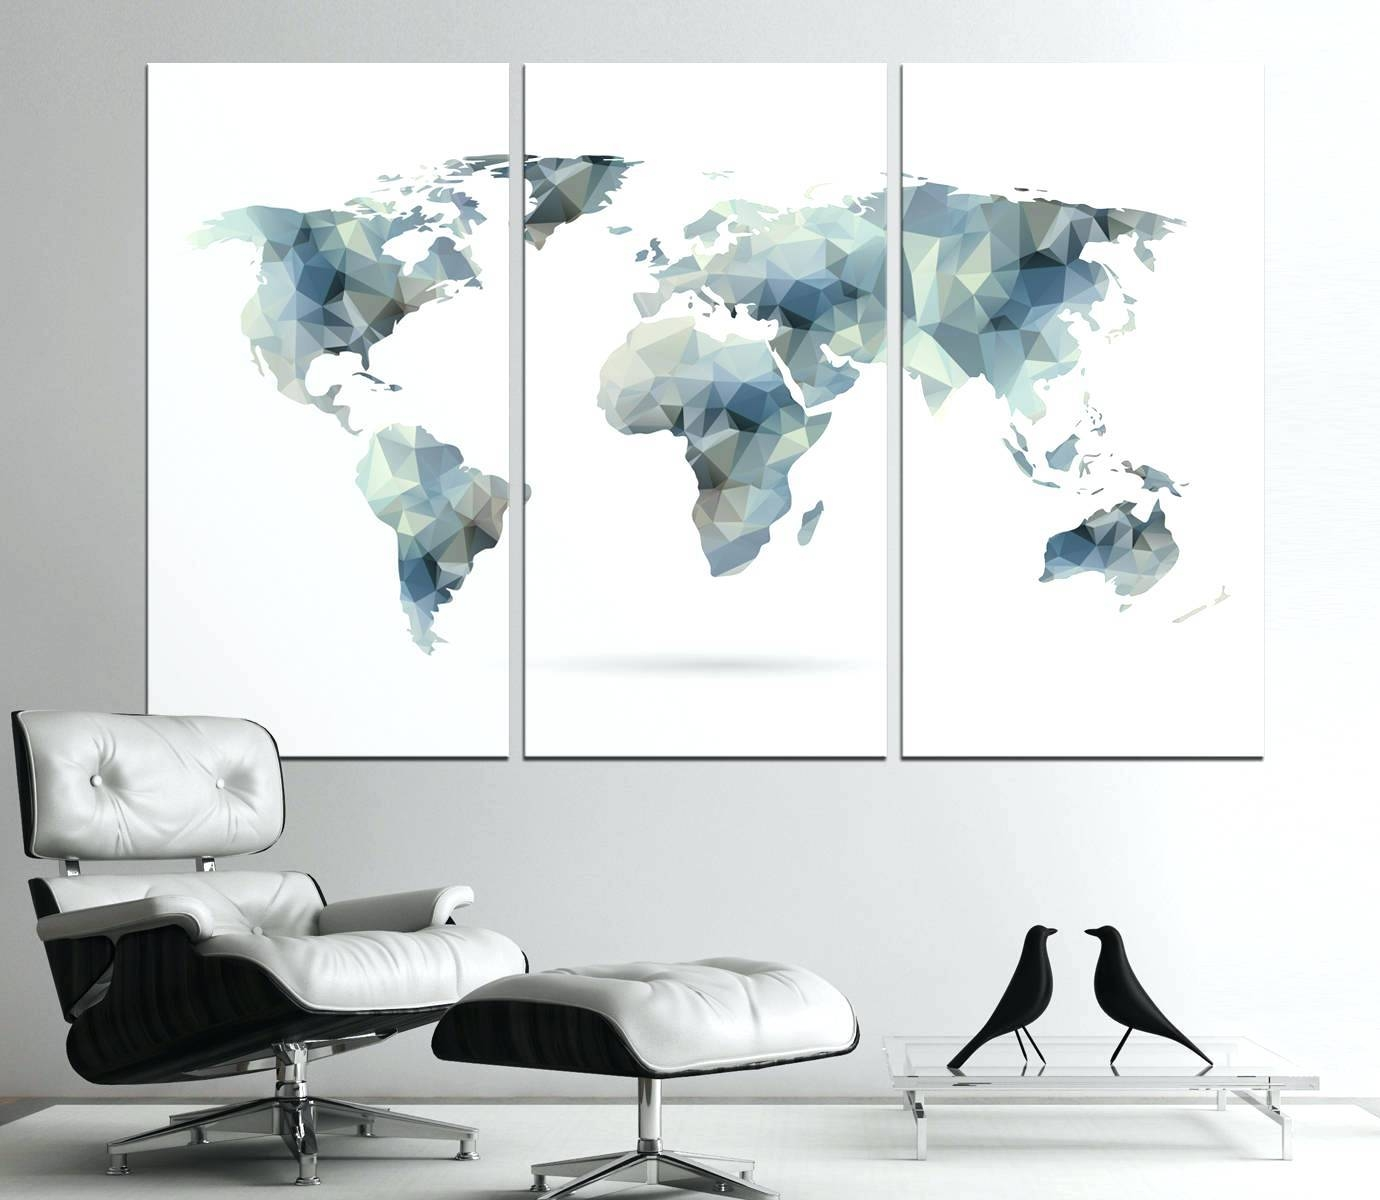 Wall Arts ~ Wall Art For Home Office Large Geometric World Map Intended For Newest World Map Wall Art (View 8 of 20)